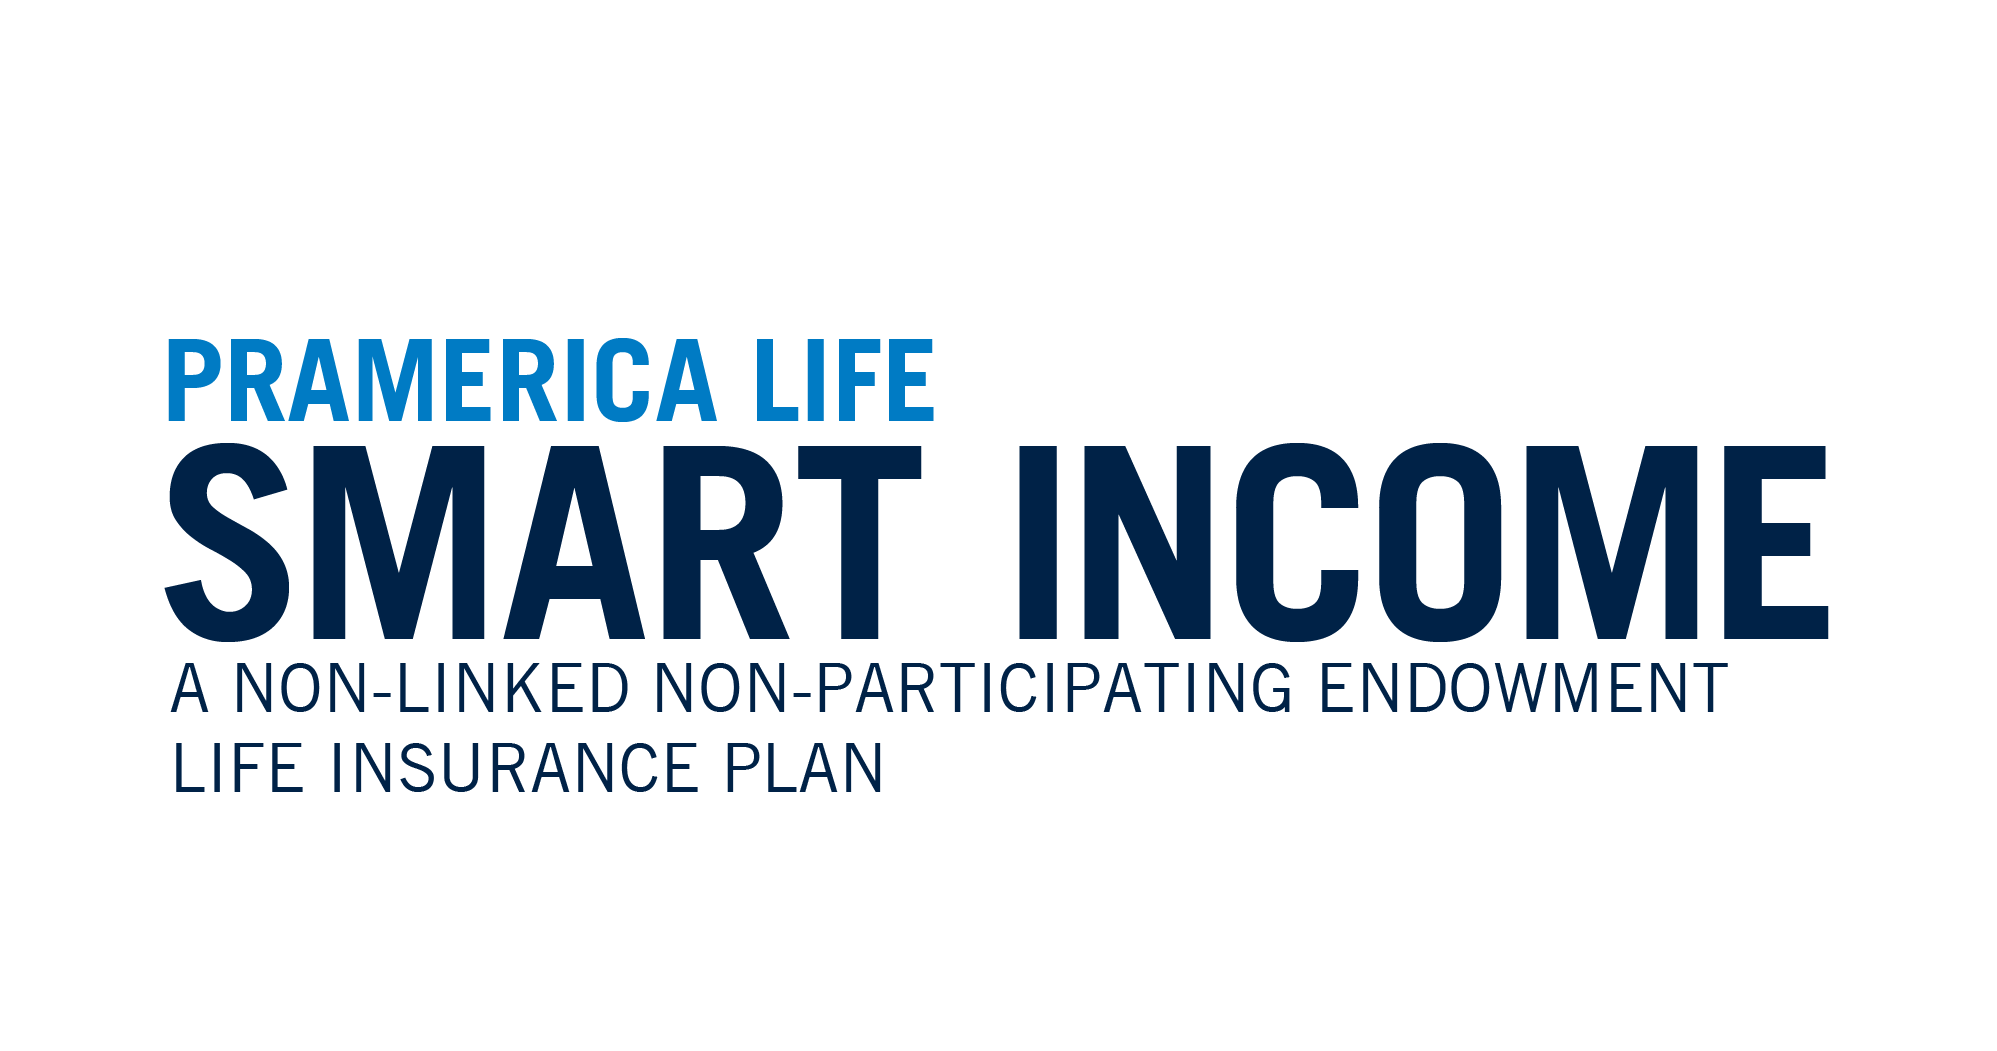 Pramerica Life Smart Income